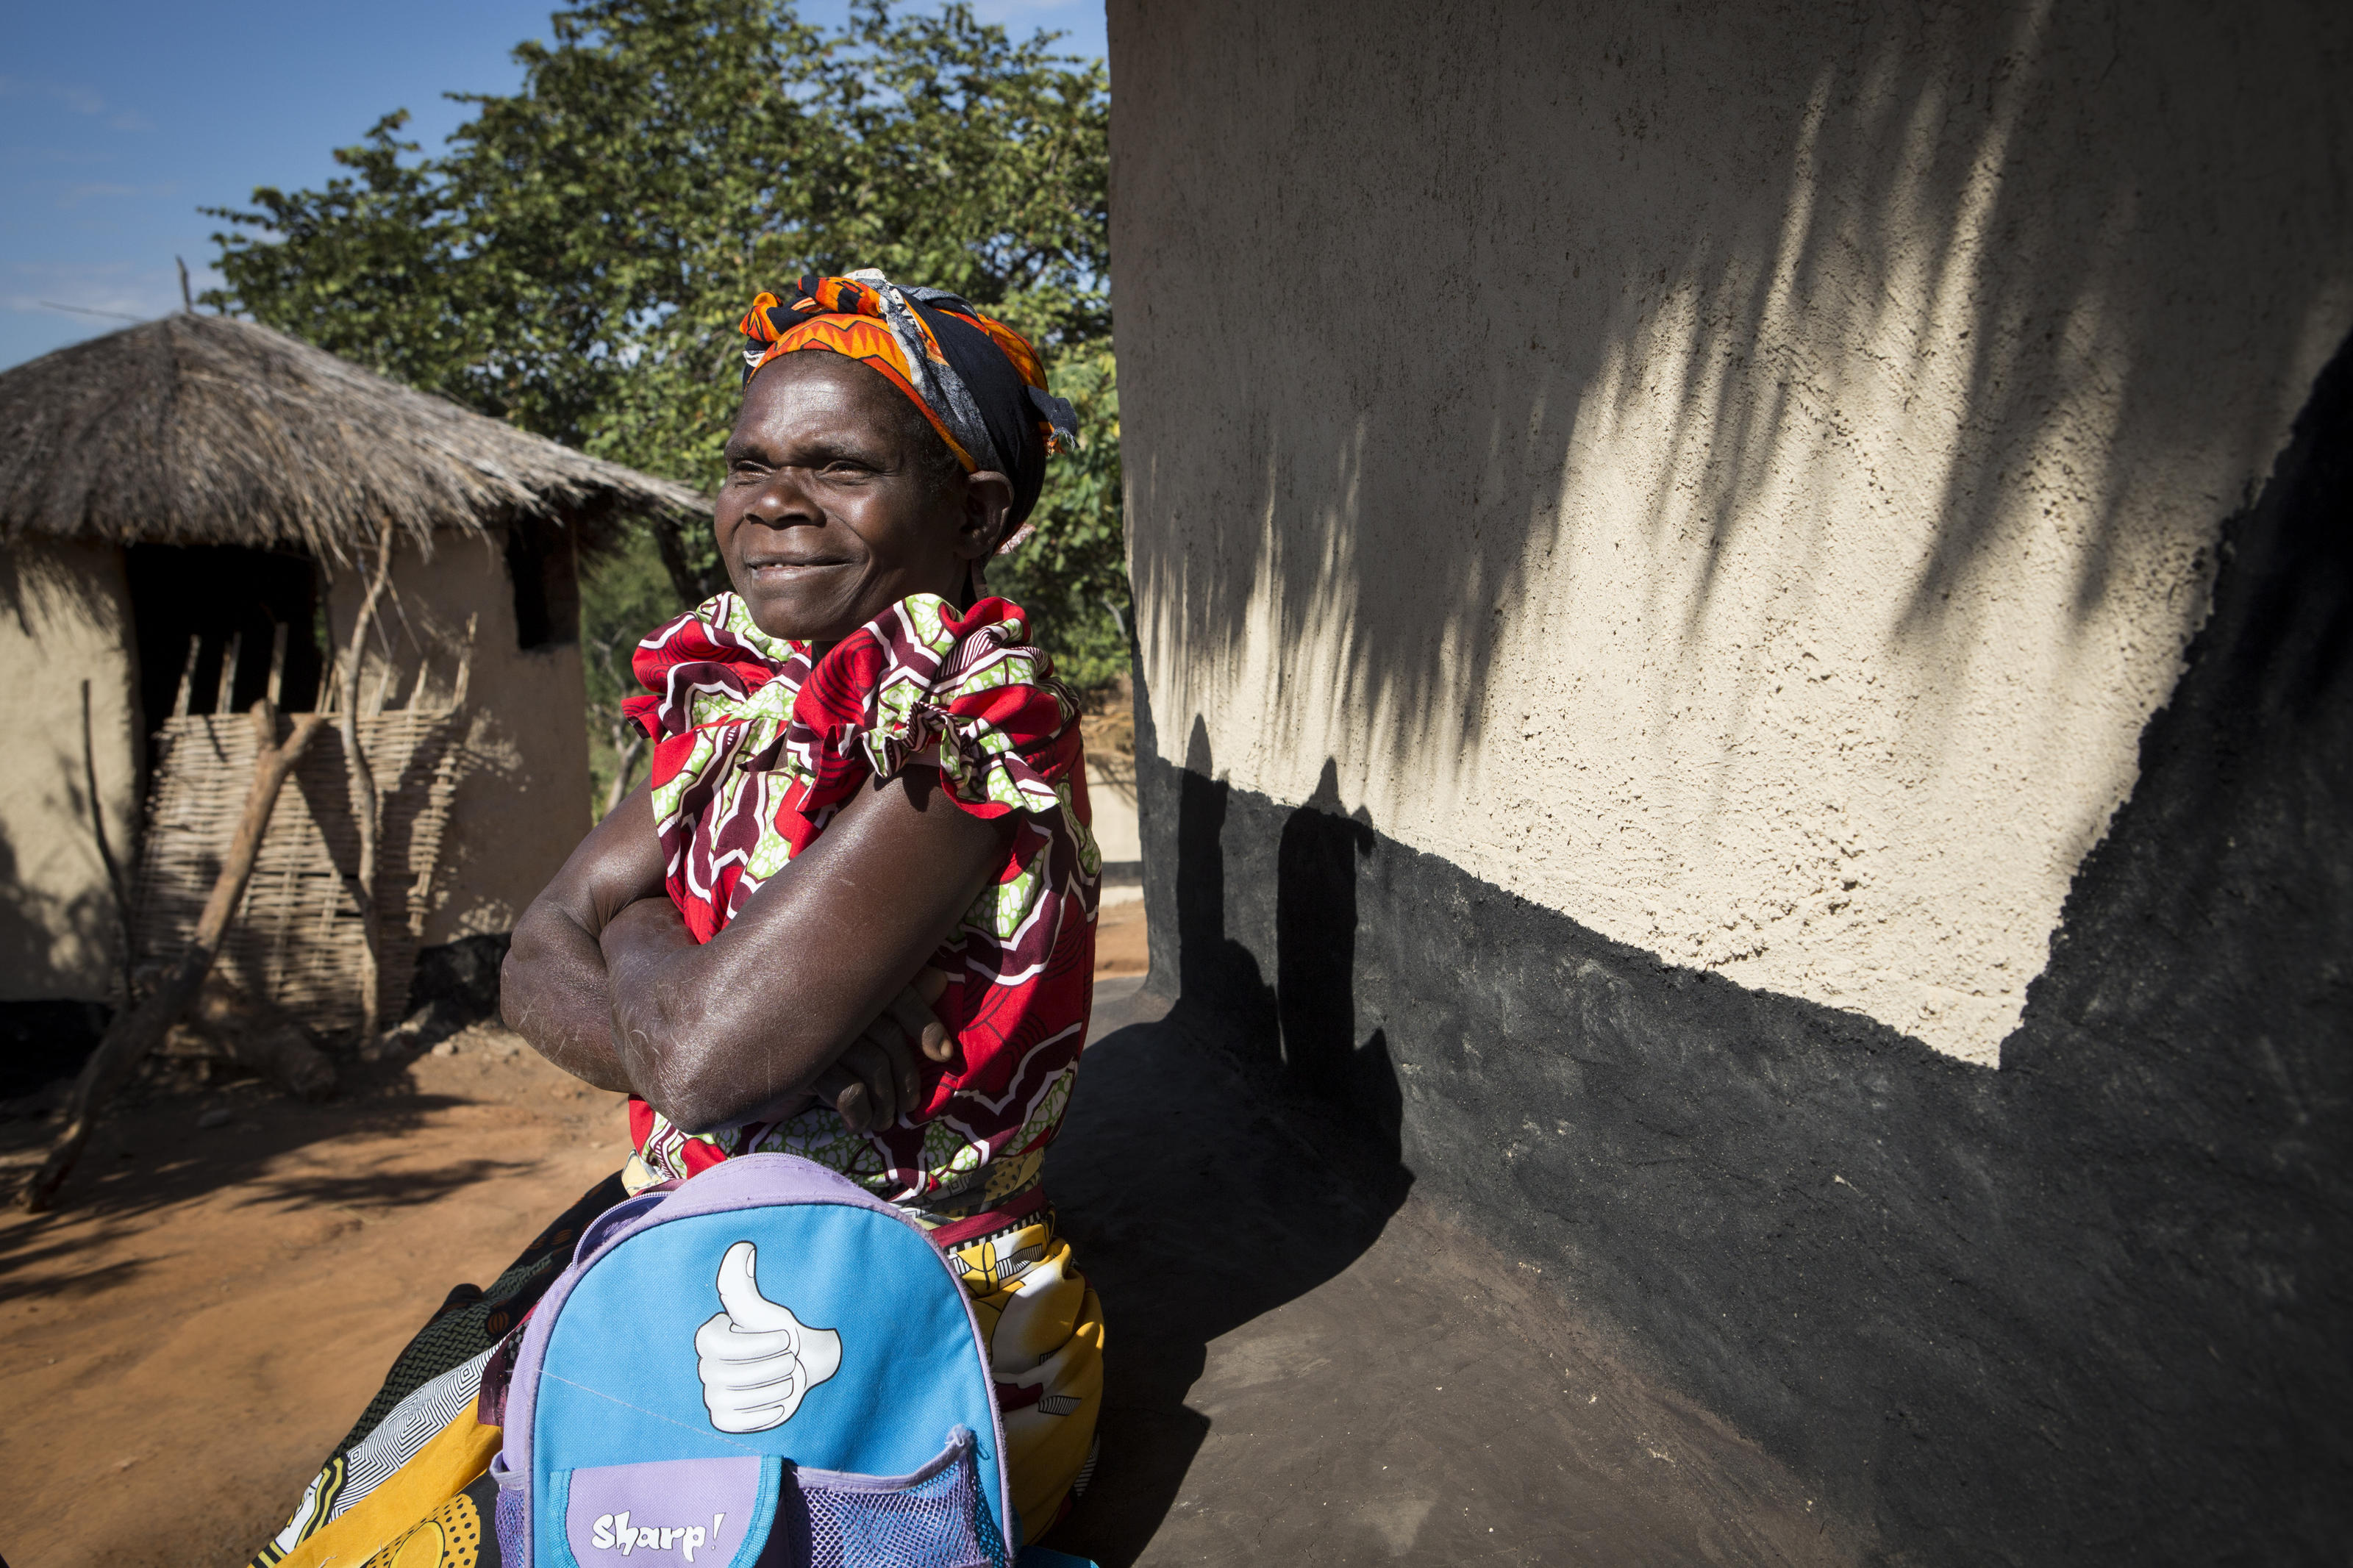 Kestina outside her home in the village of Chandaka, Malawi.